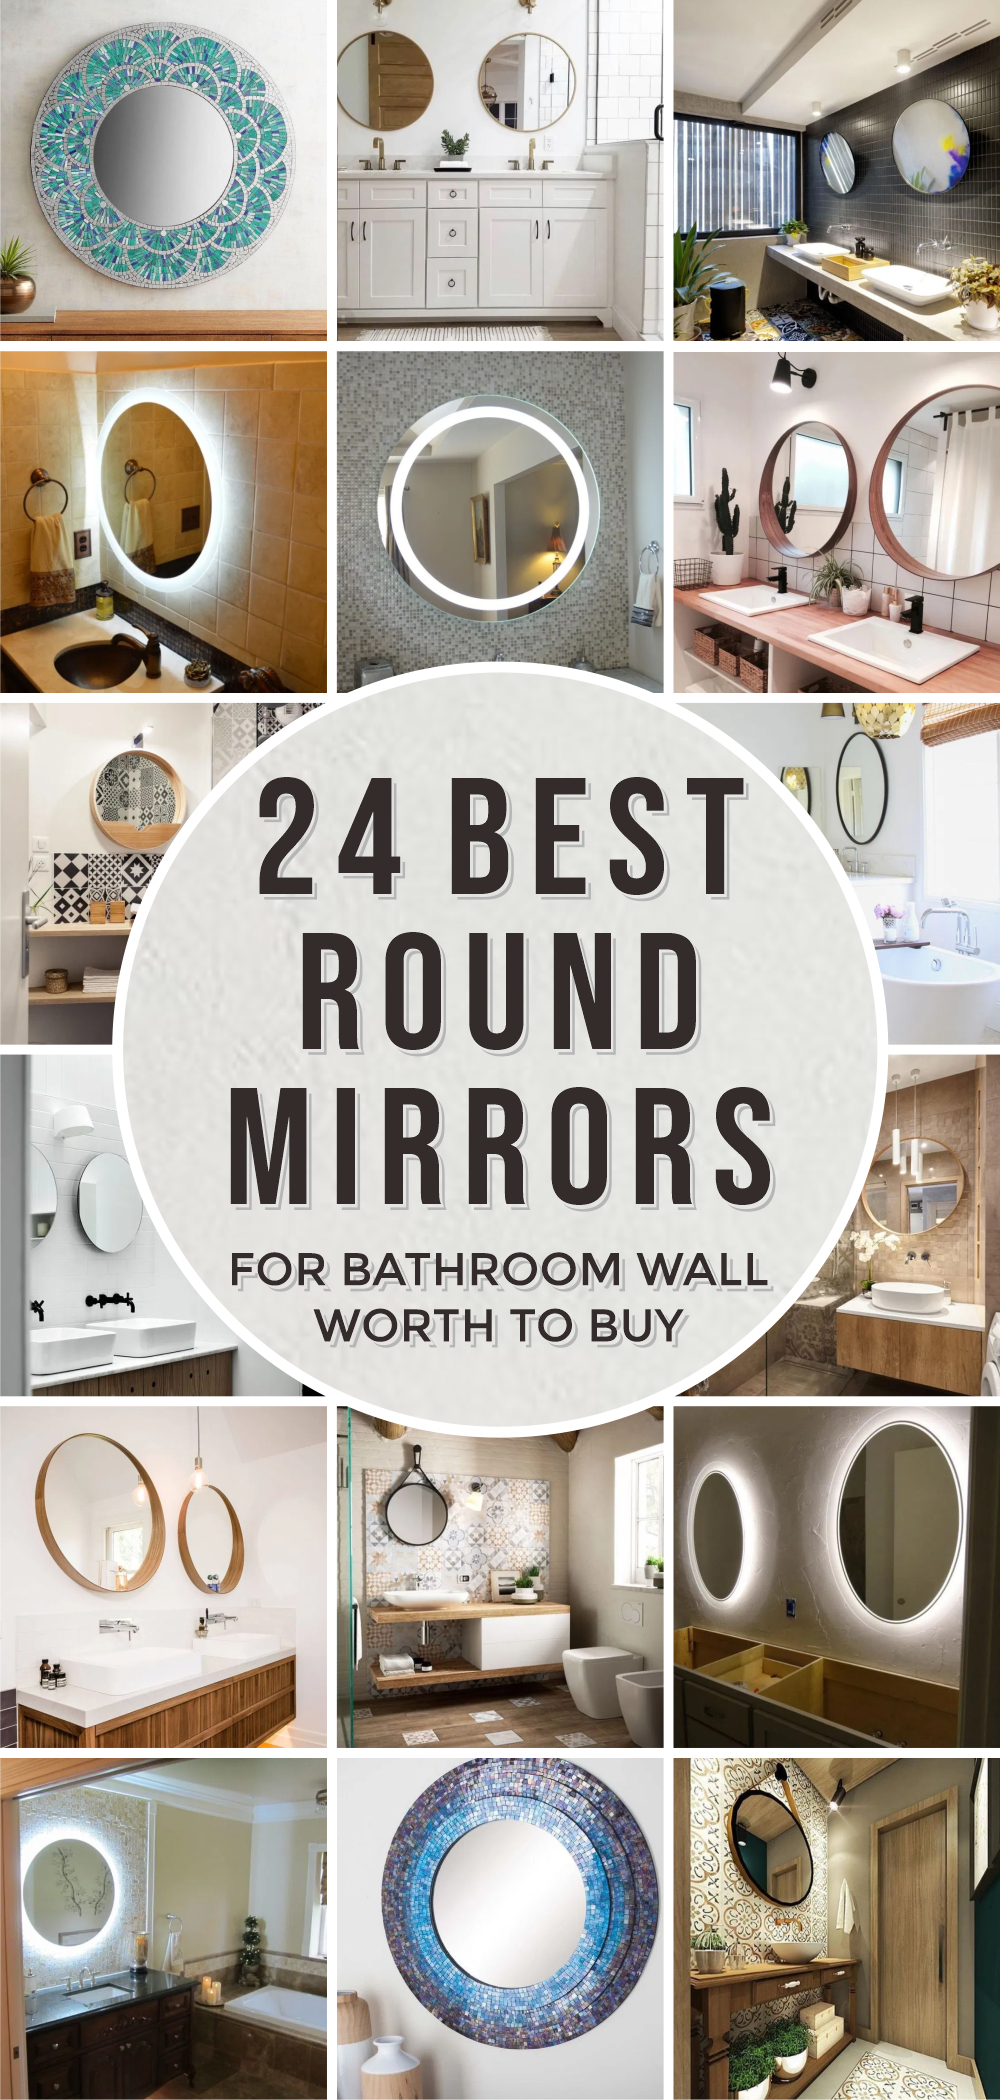 24 best round mirrors for bathroom wall worth to buy 1